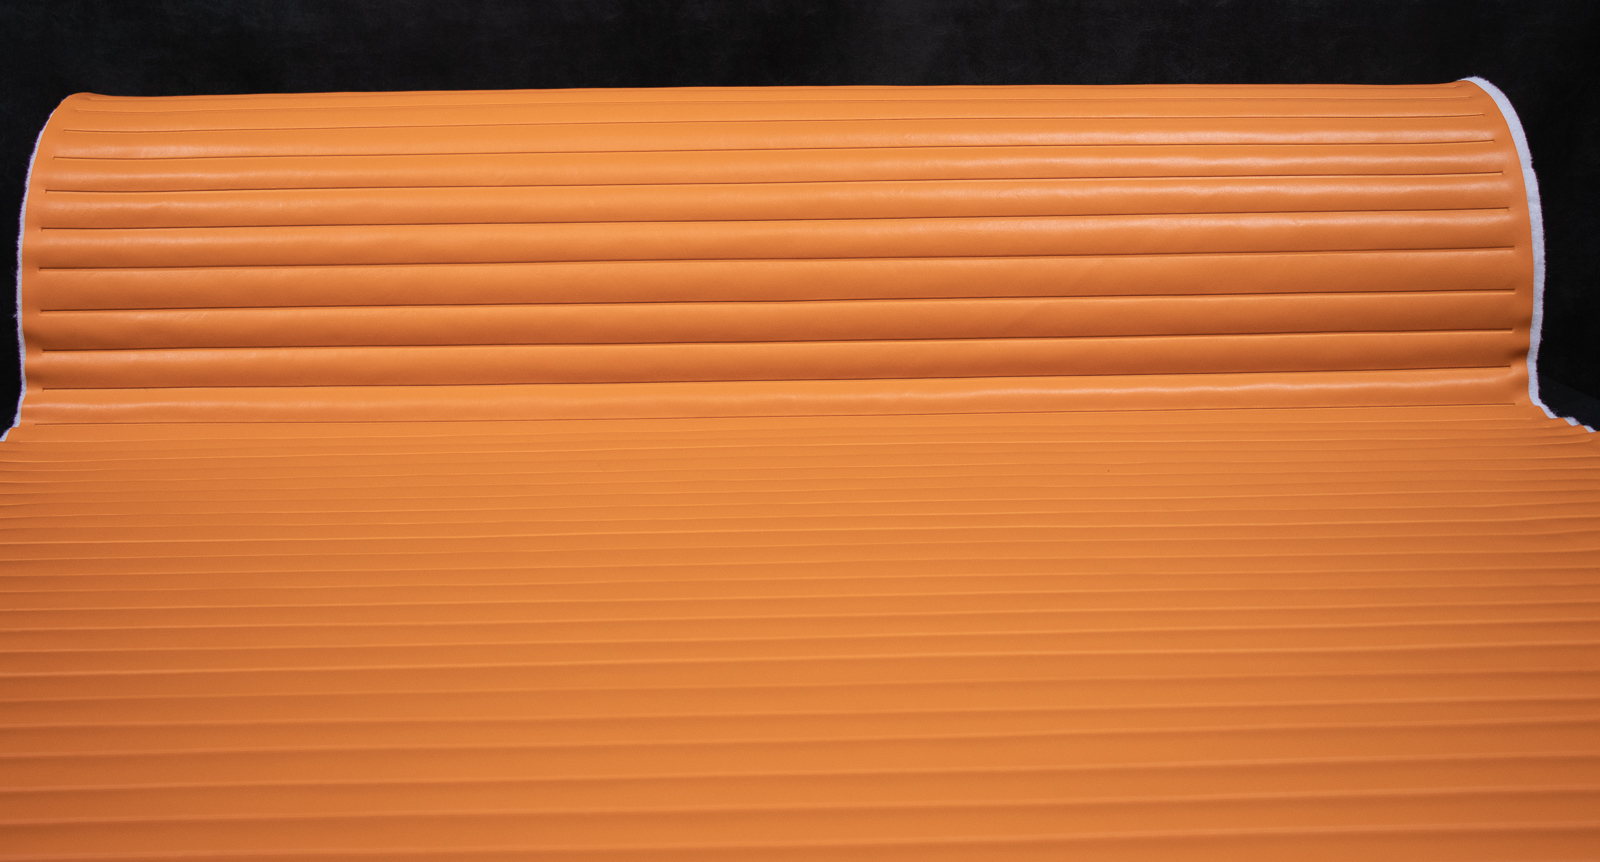 Details about Pleated Marine Vinyl Upholstery Fabric Boat Auto